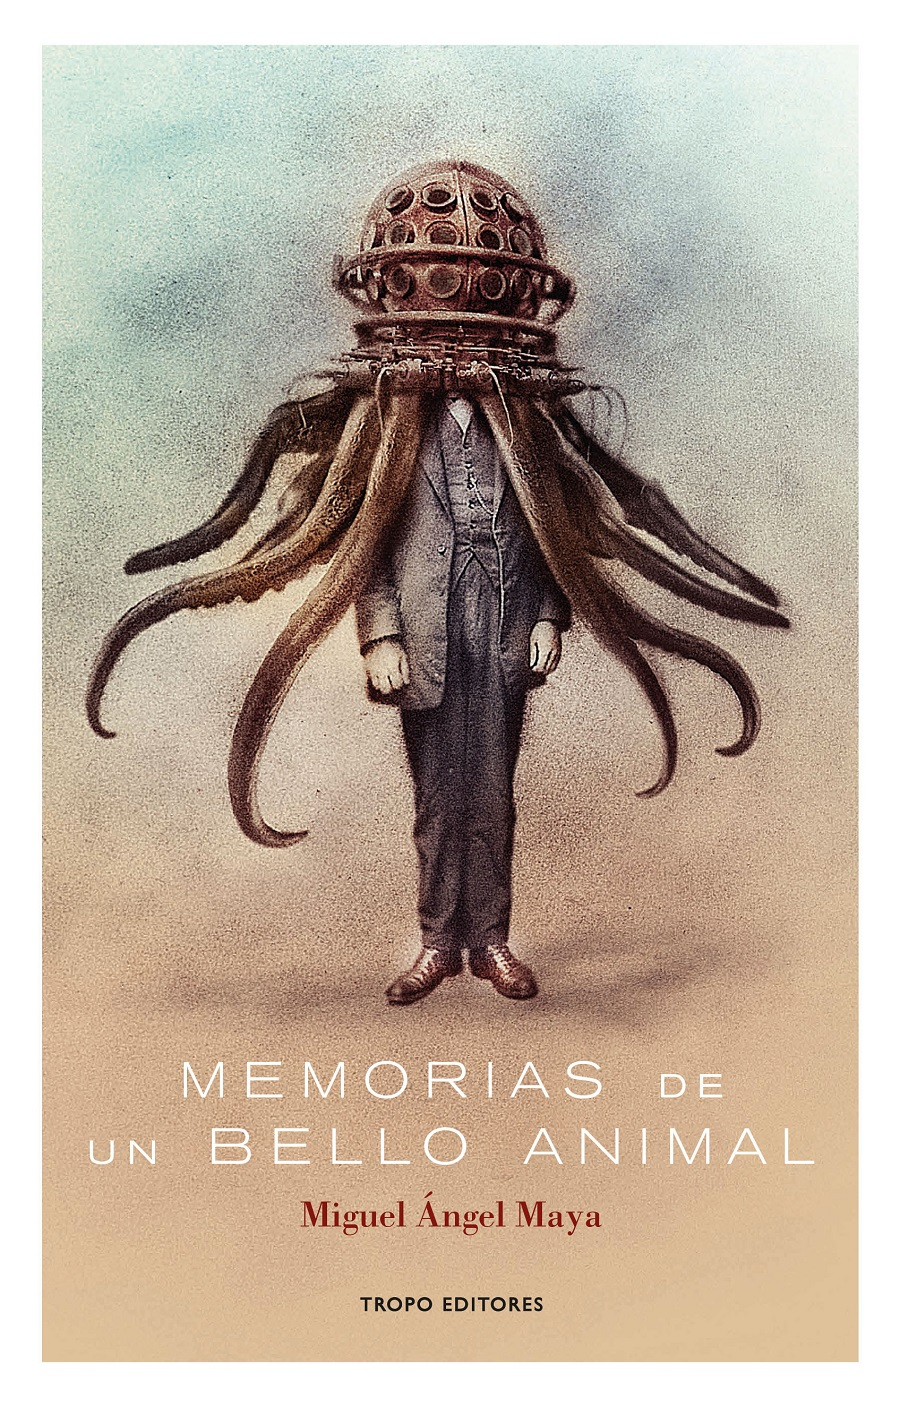 MEMORIAS DE UN BELLO ANIMAL (Tropo Editores, 2017)